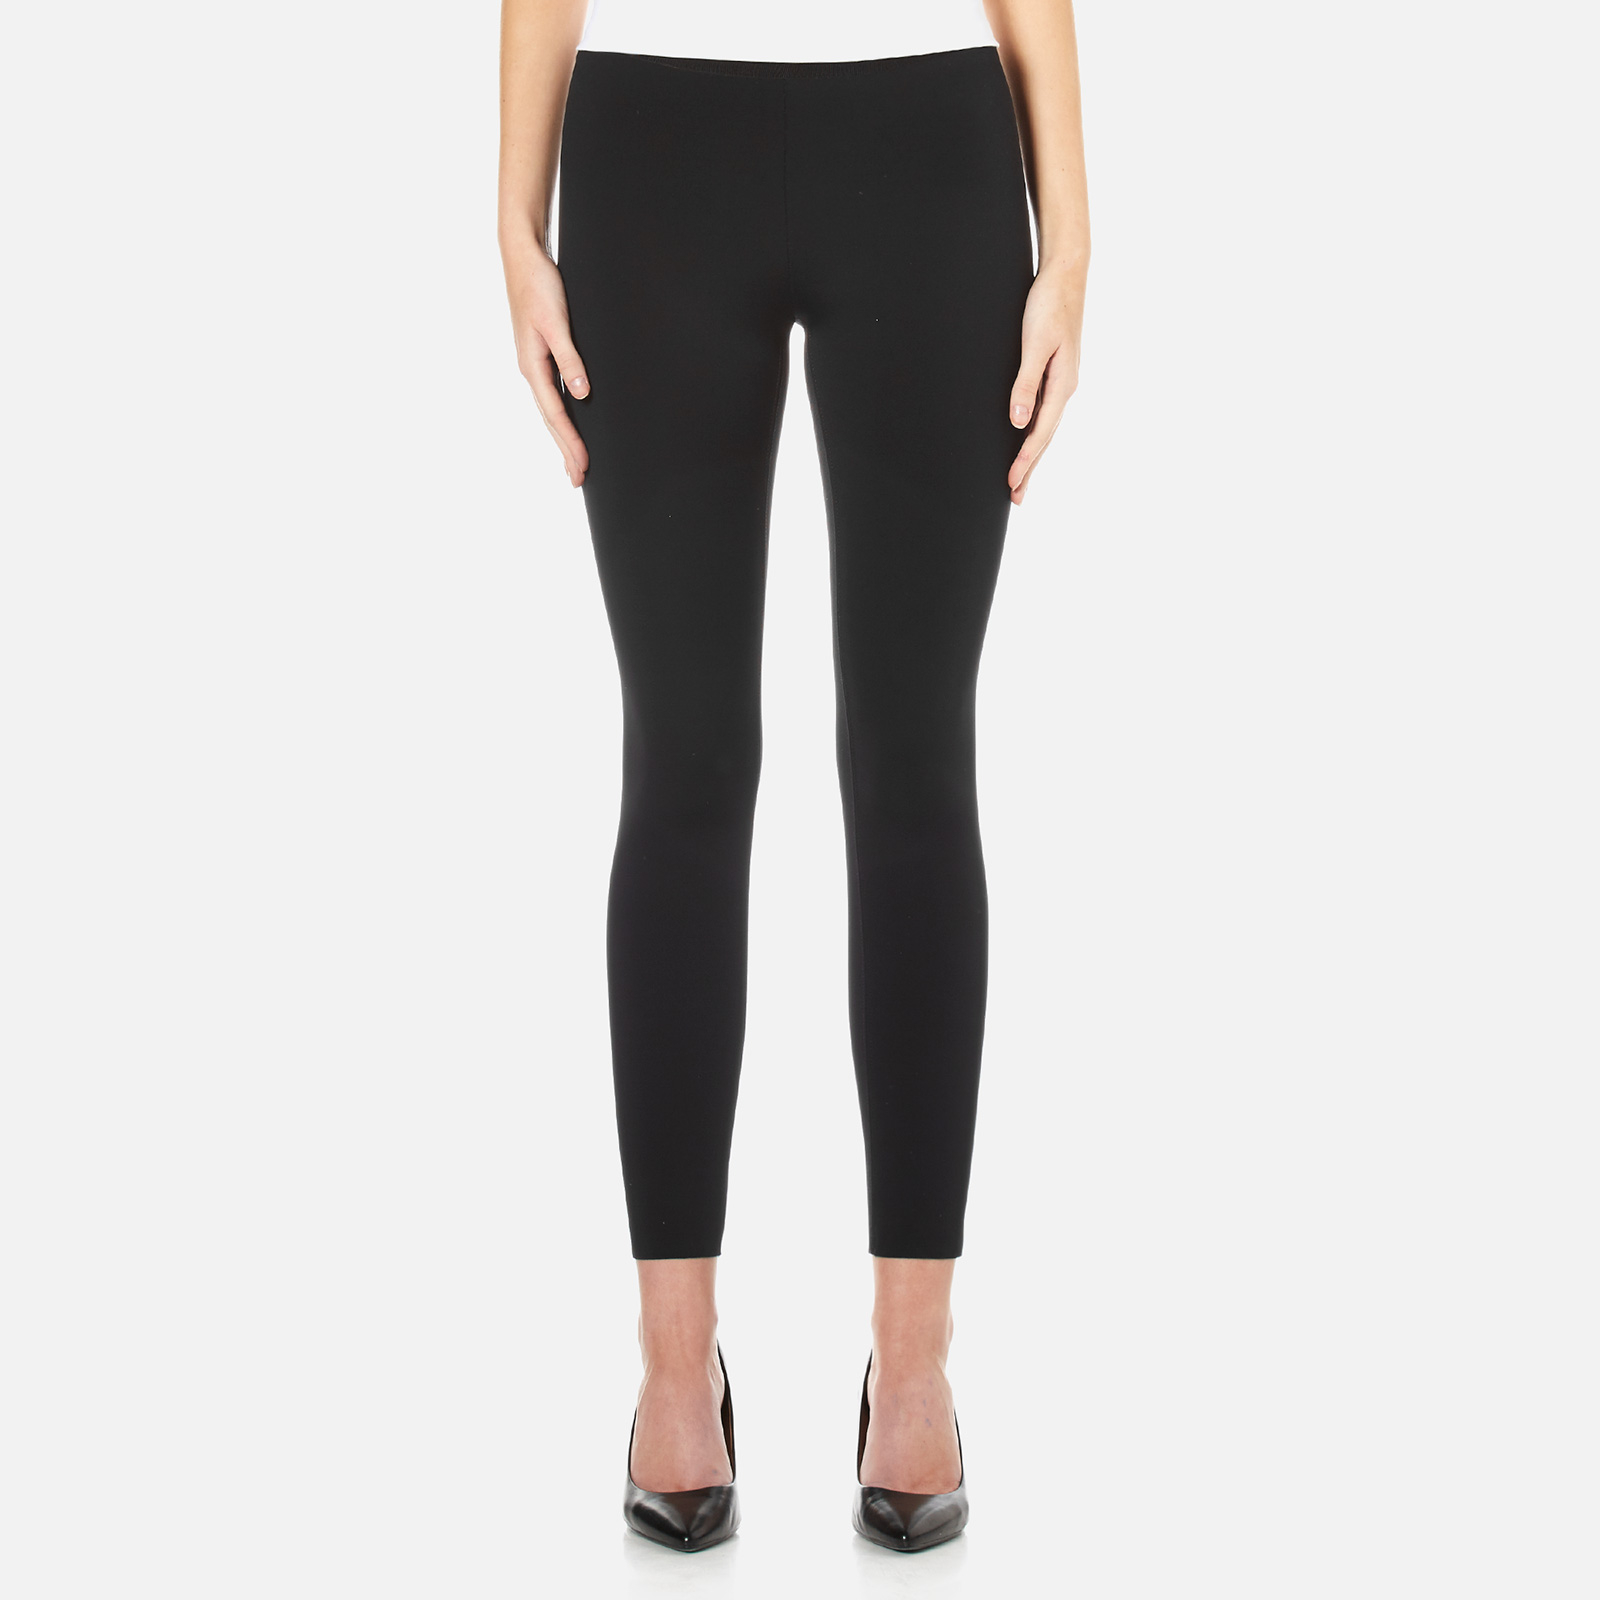 c4375ccb2a1e5 Helmut Lang Women's Scuba Leggings - Black - Free UK Delivery over £50